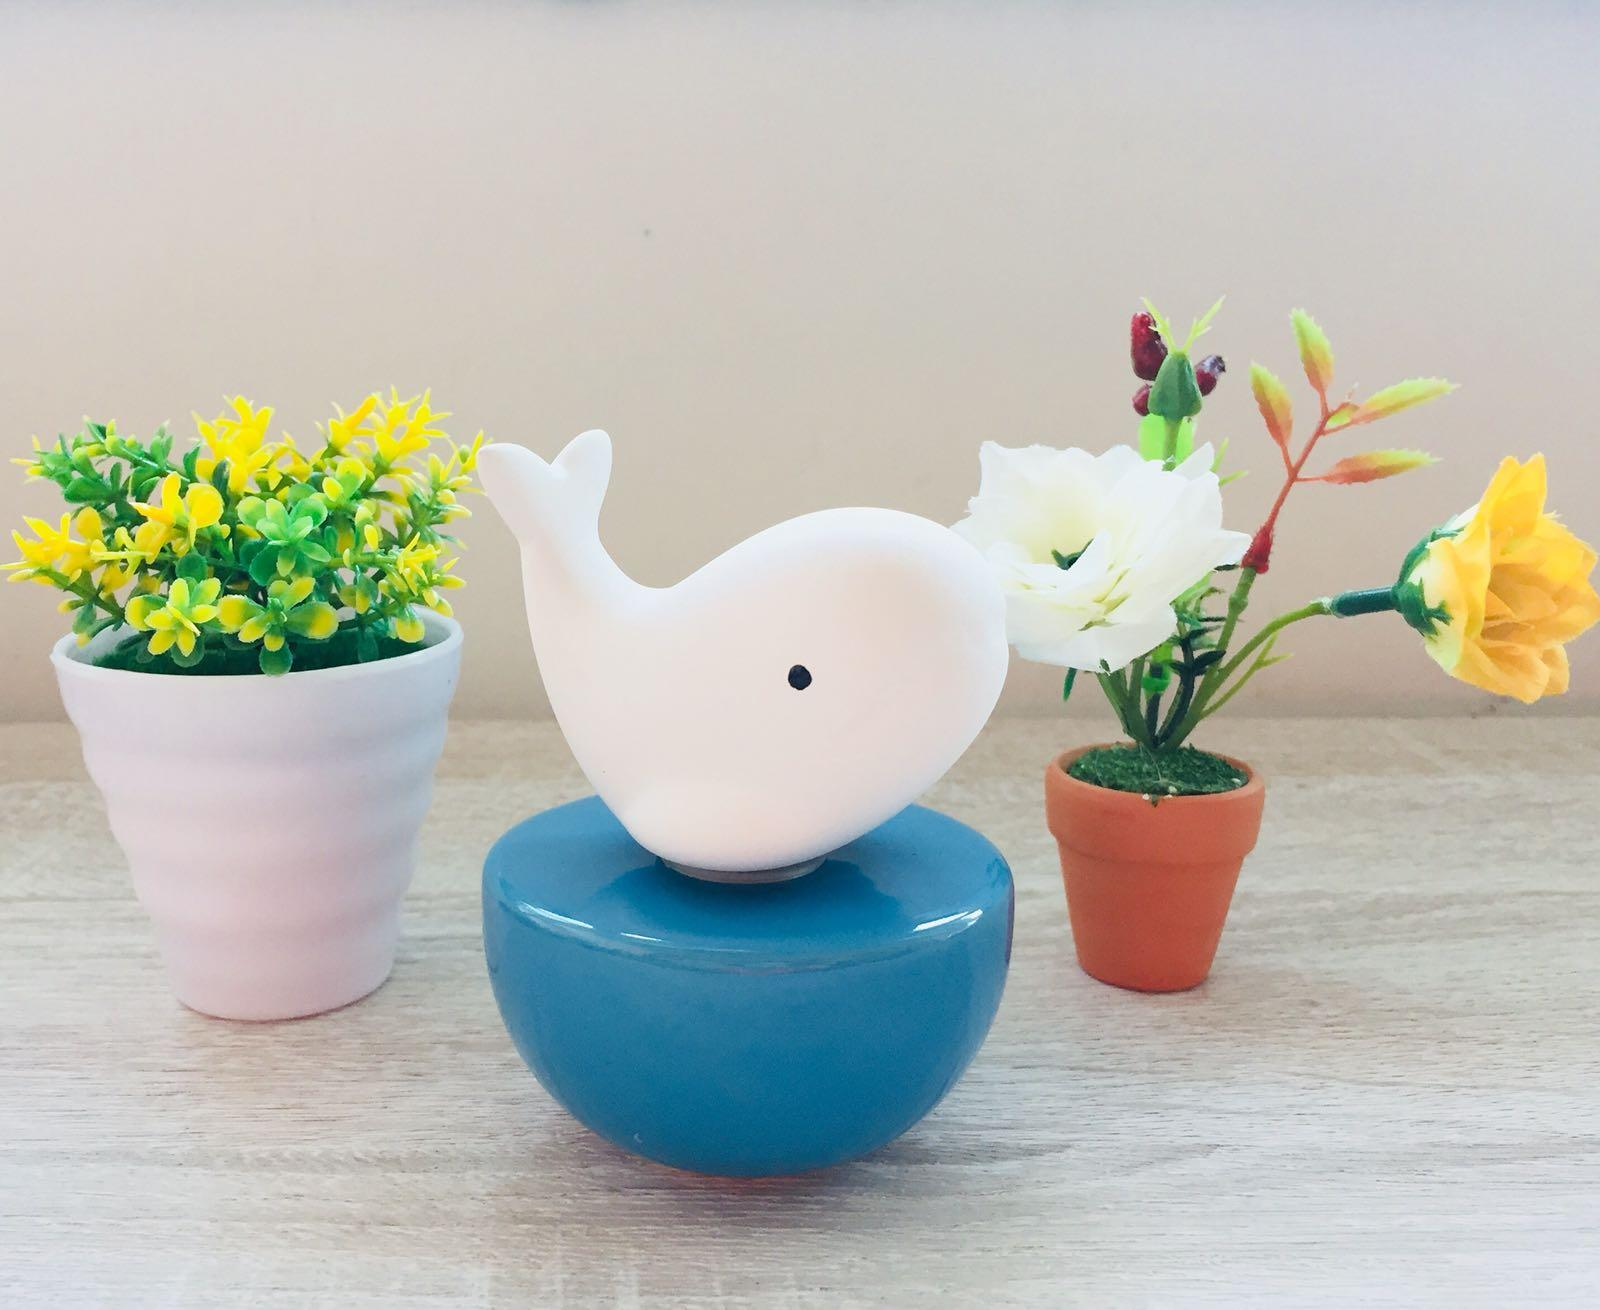 Best Gift Idea - Ceramic Fragrance Diffuser Whilly Whale Set (Free Fragrance Oil 60ml)